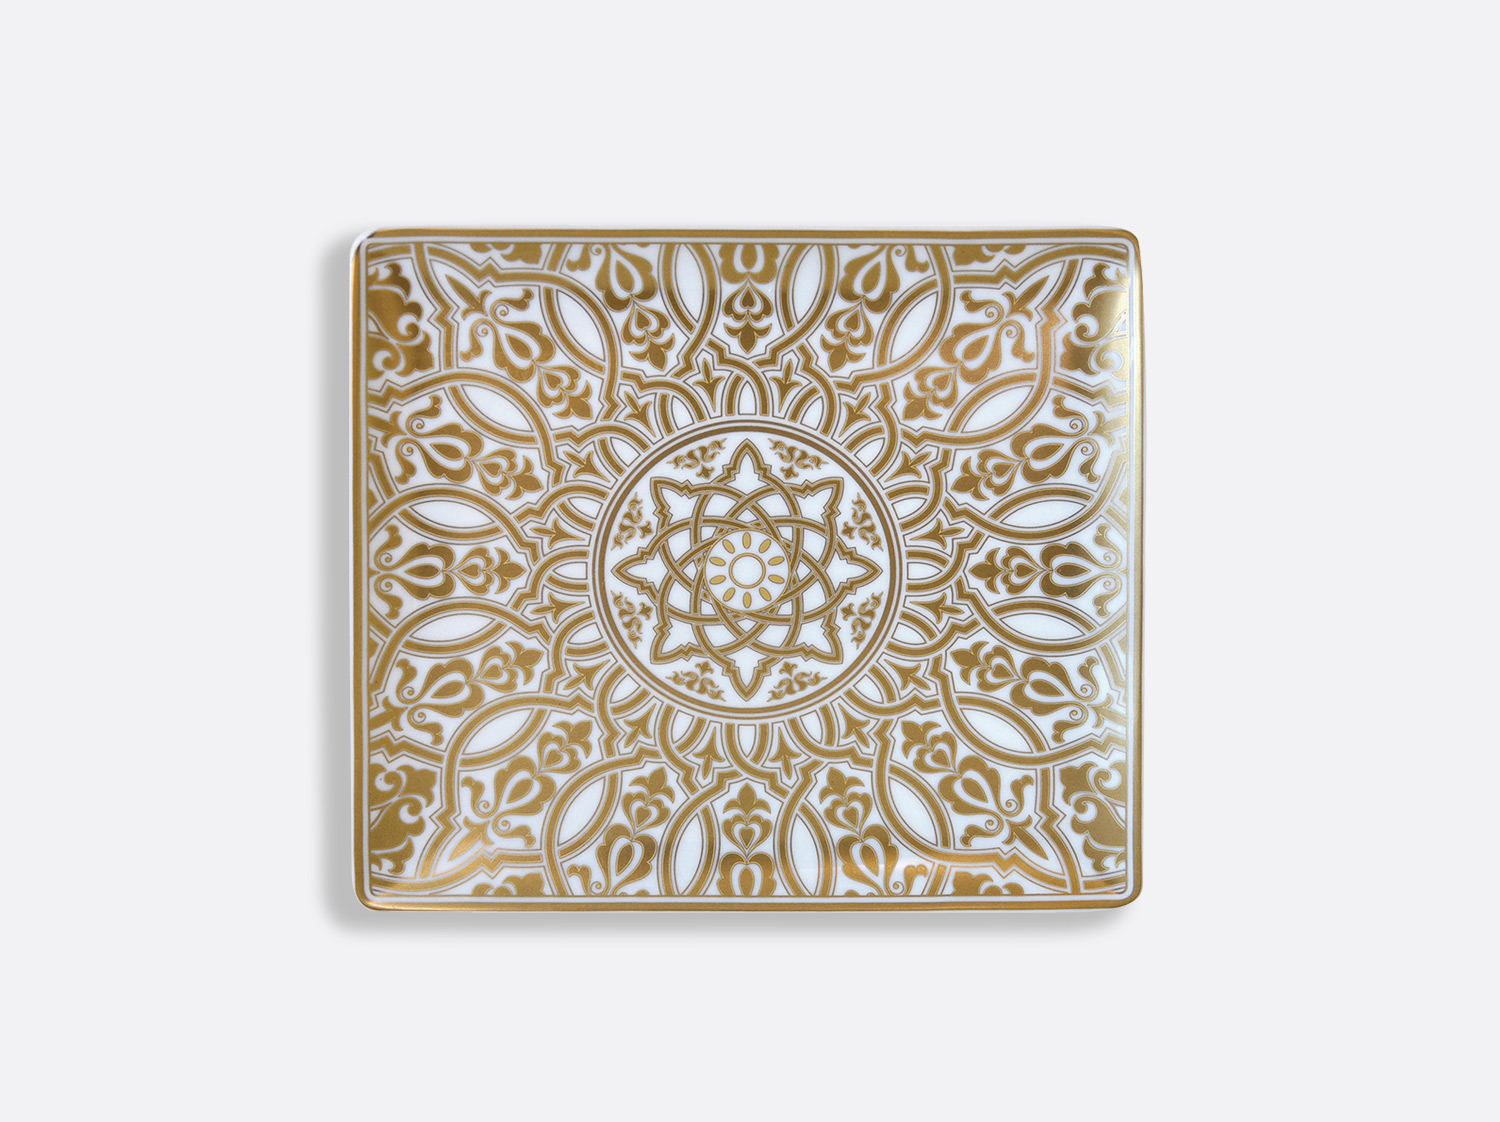 Plateau rectangulaire 22 x 19,5 cm en porcelaine de la collection Venise Bernardaud